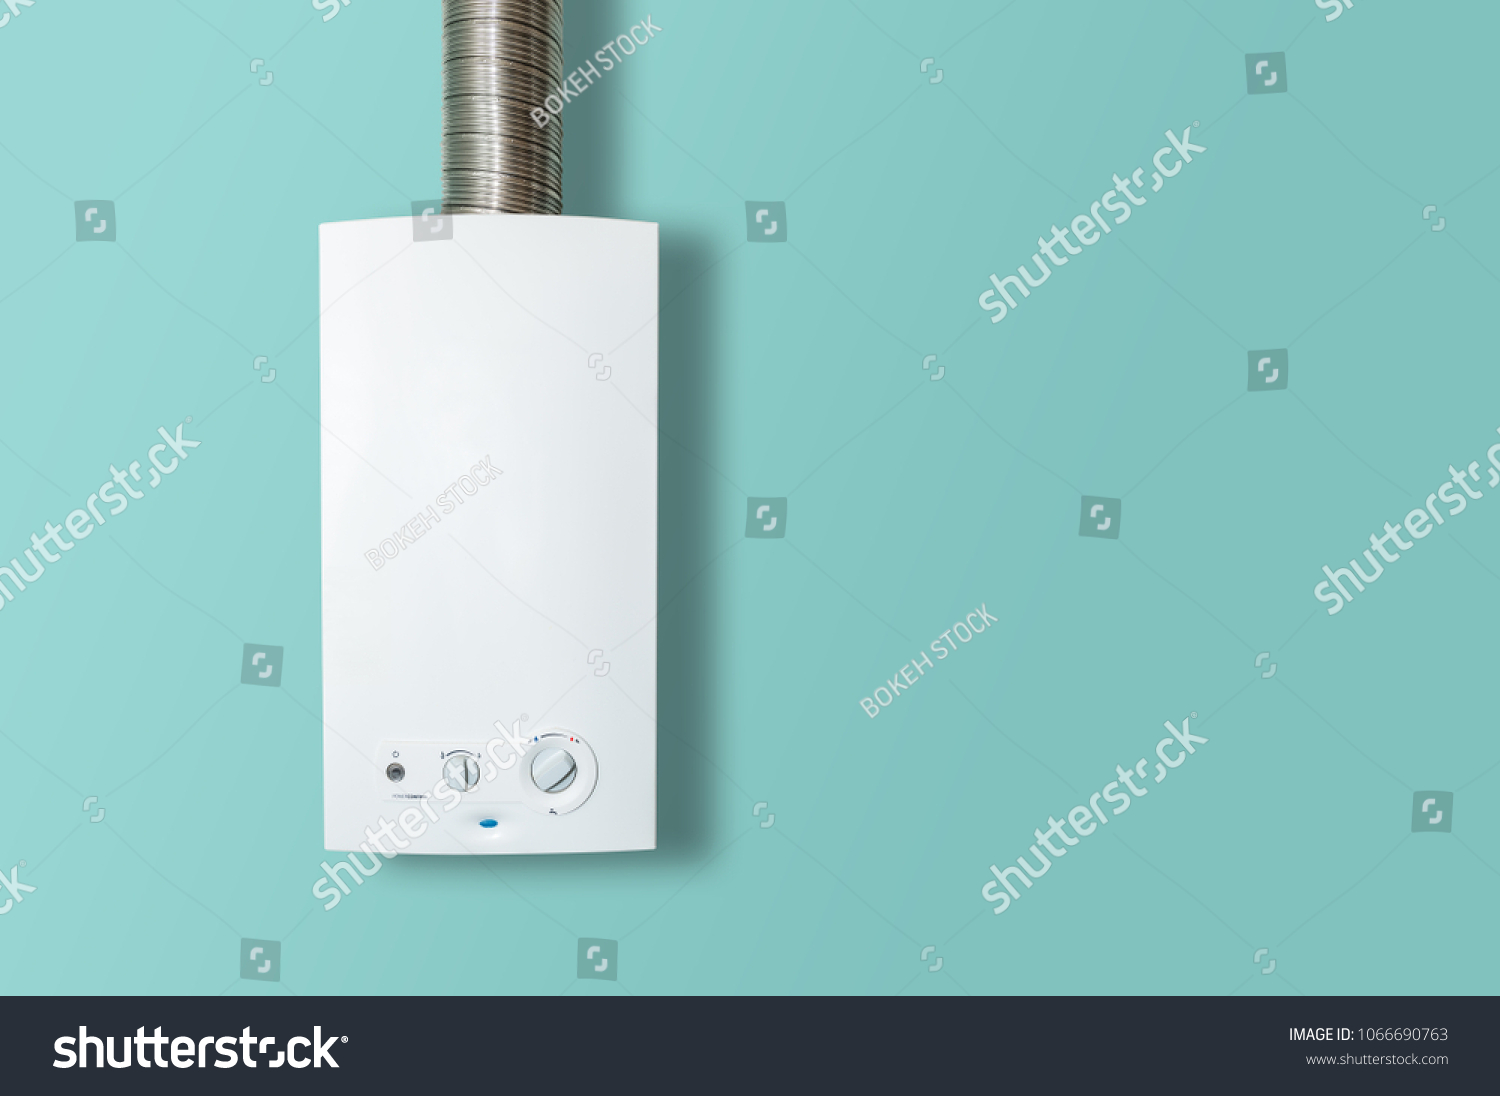 Modern Home Gas Boiler Water Heater Stock Photo (Edit Now ...